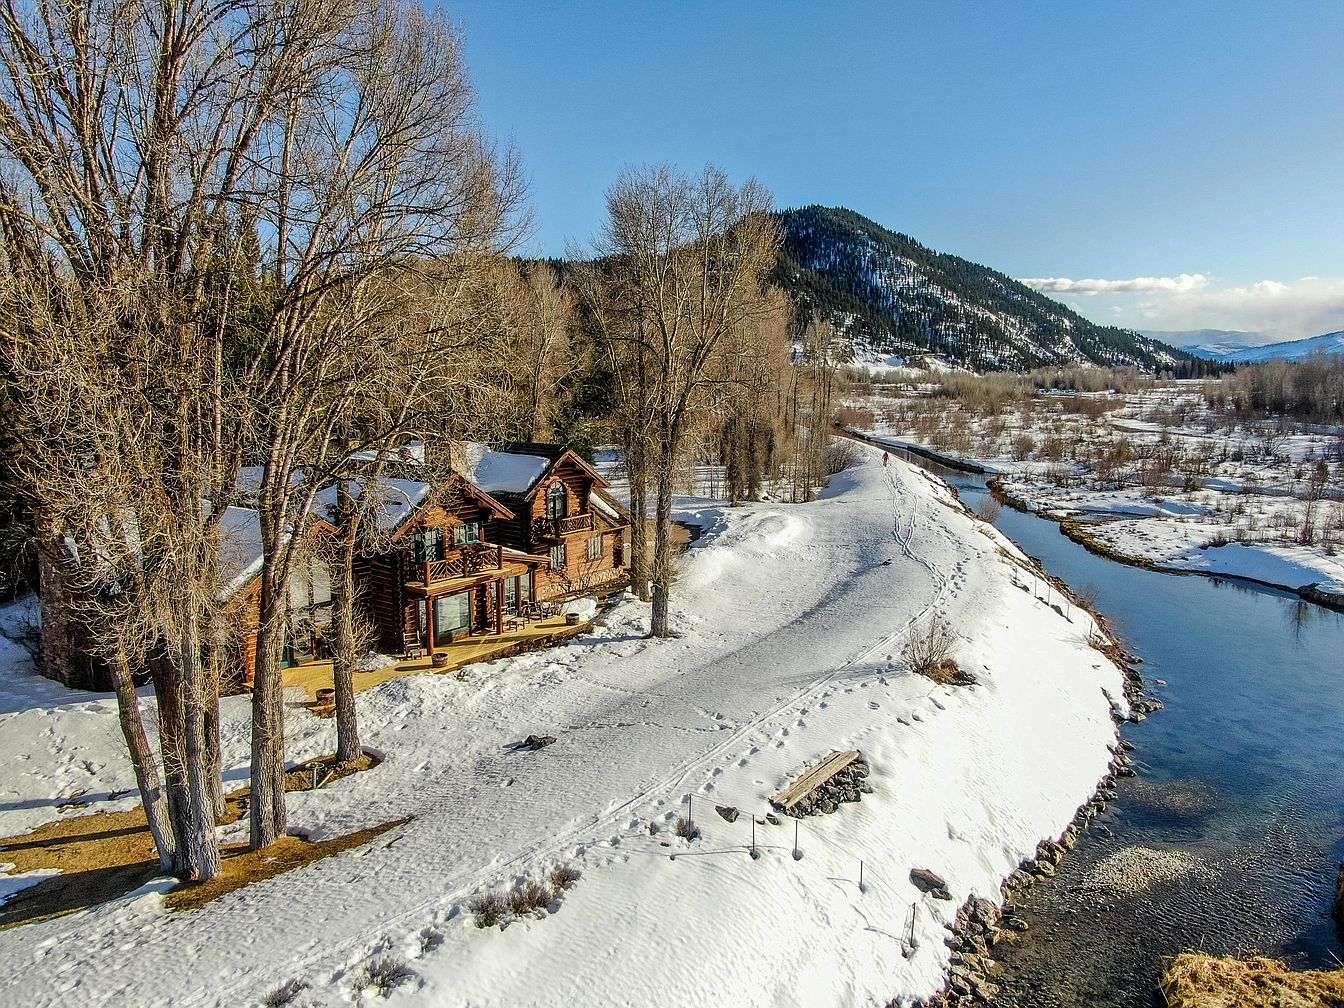 The Most Expensive Home For Sale In Jackson, WY